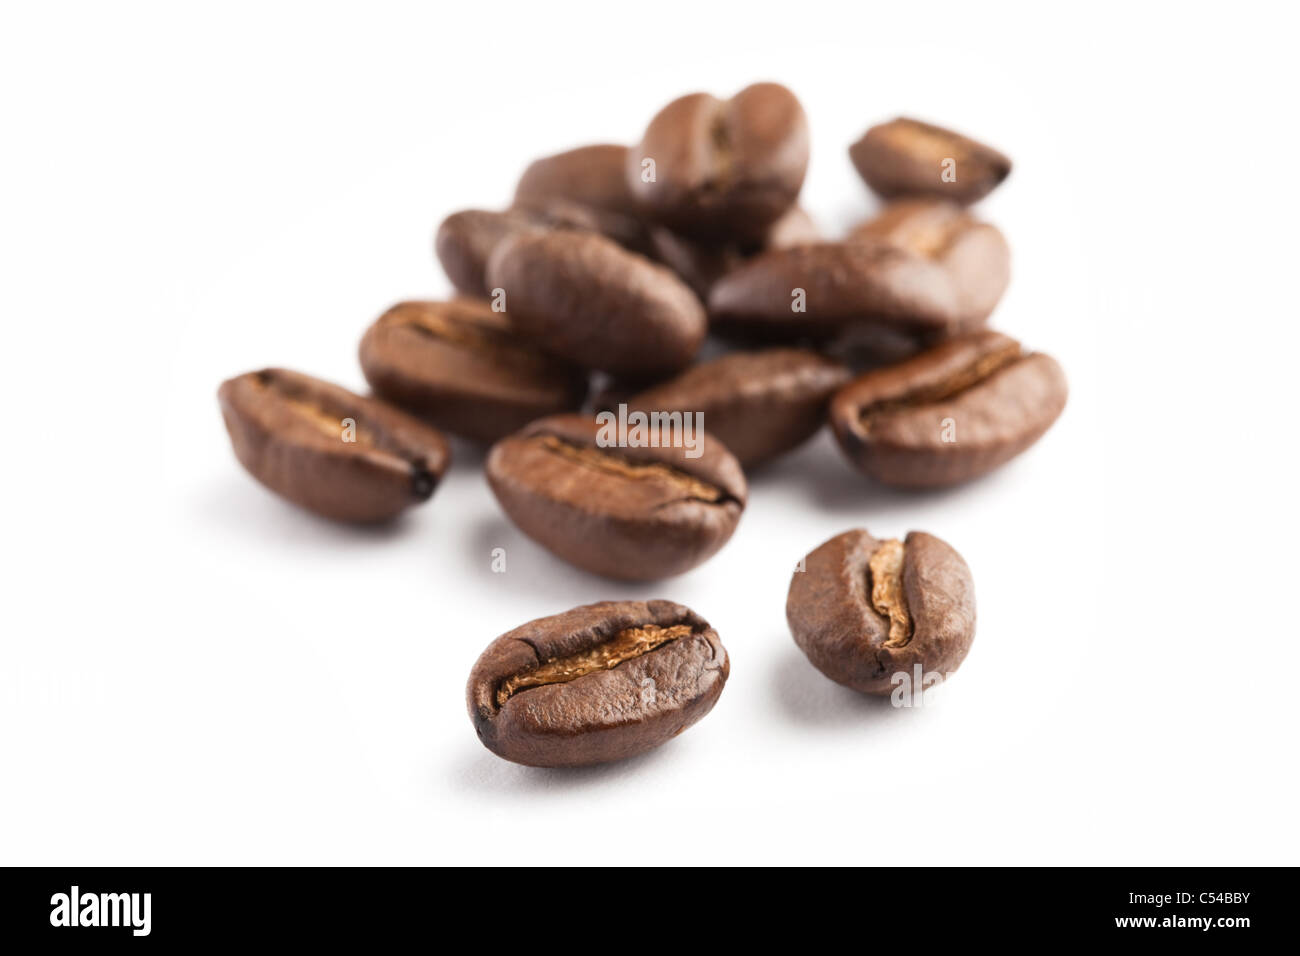 Coffee_Bean_with_white_background-C54BBY